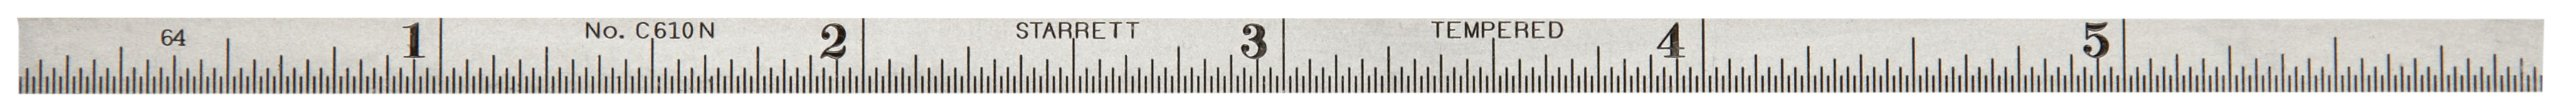 Starrett C610N-6 Spring Tempered Steel Narrow Rule With Inch Graduations, 6'' Length, 3/16'' Width, 3/64'' Thickness